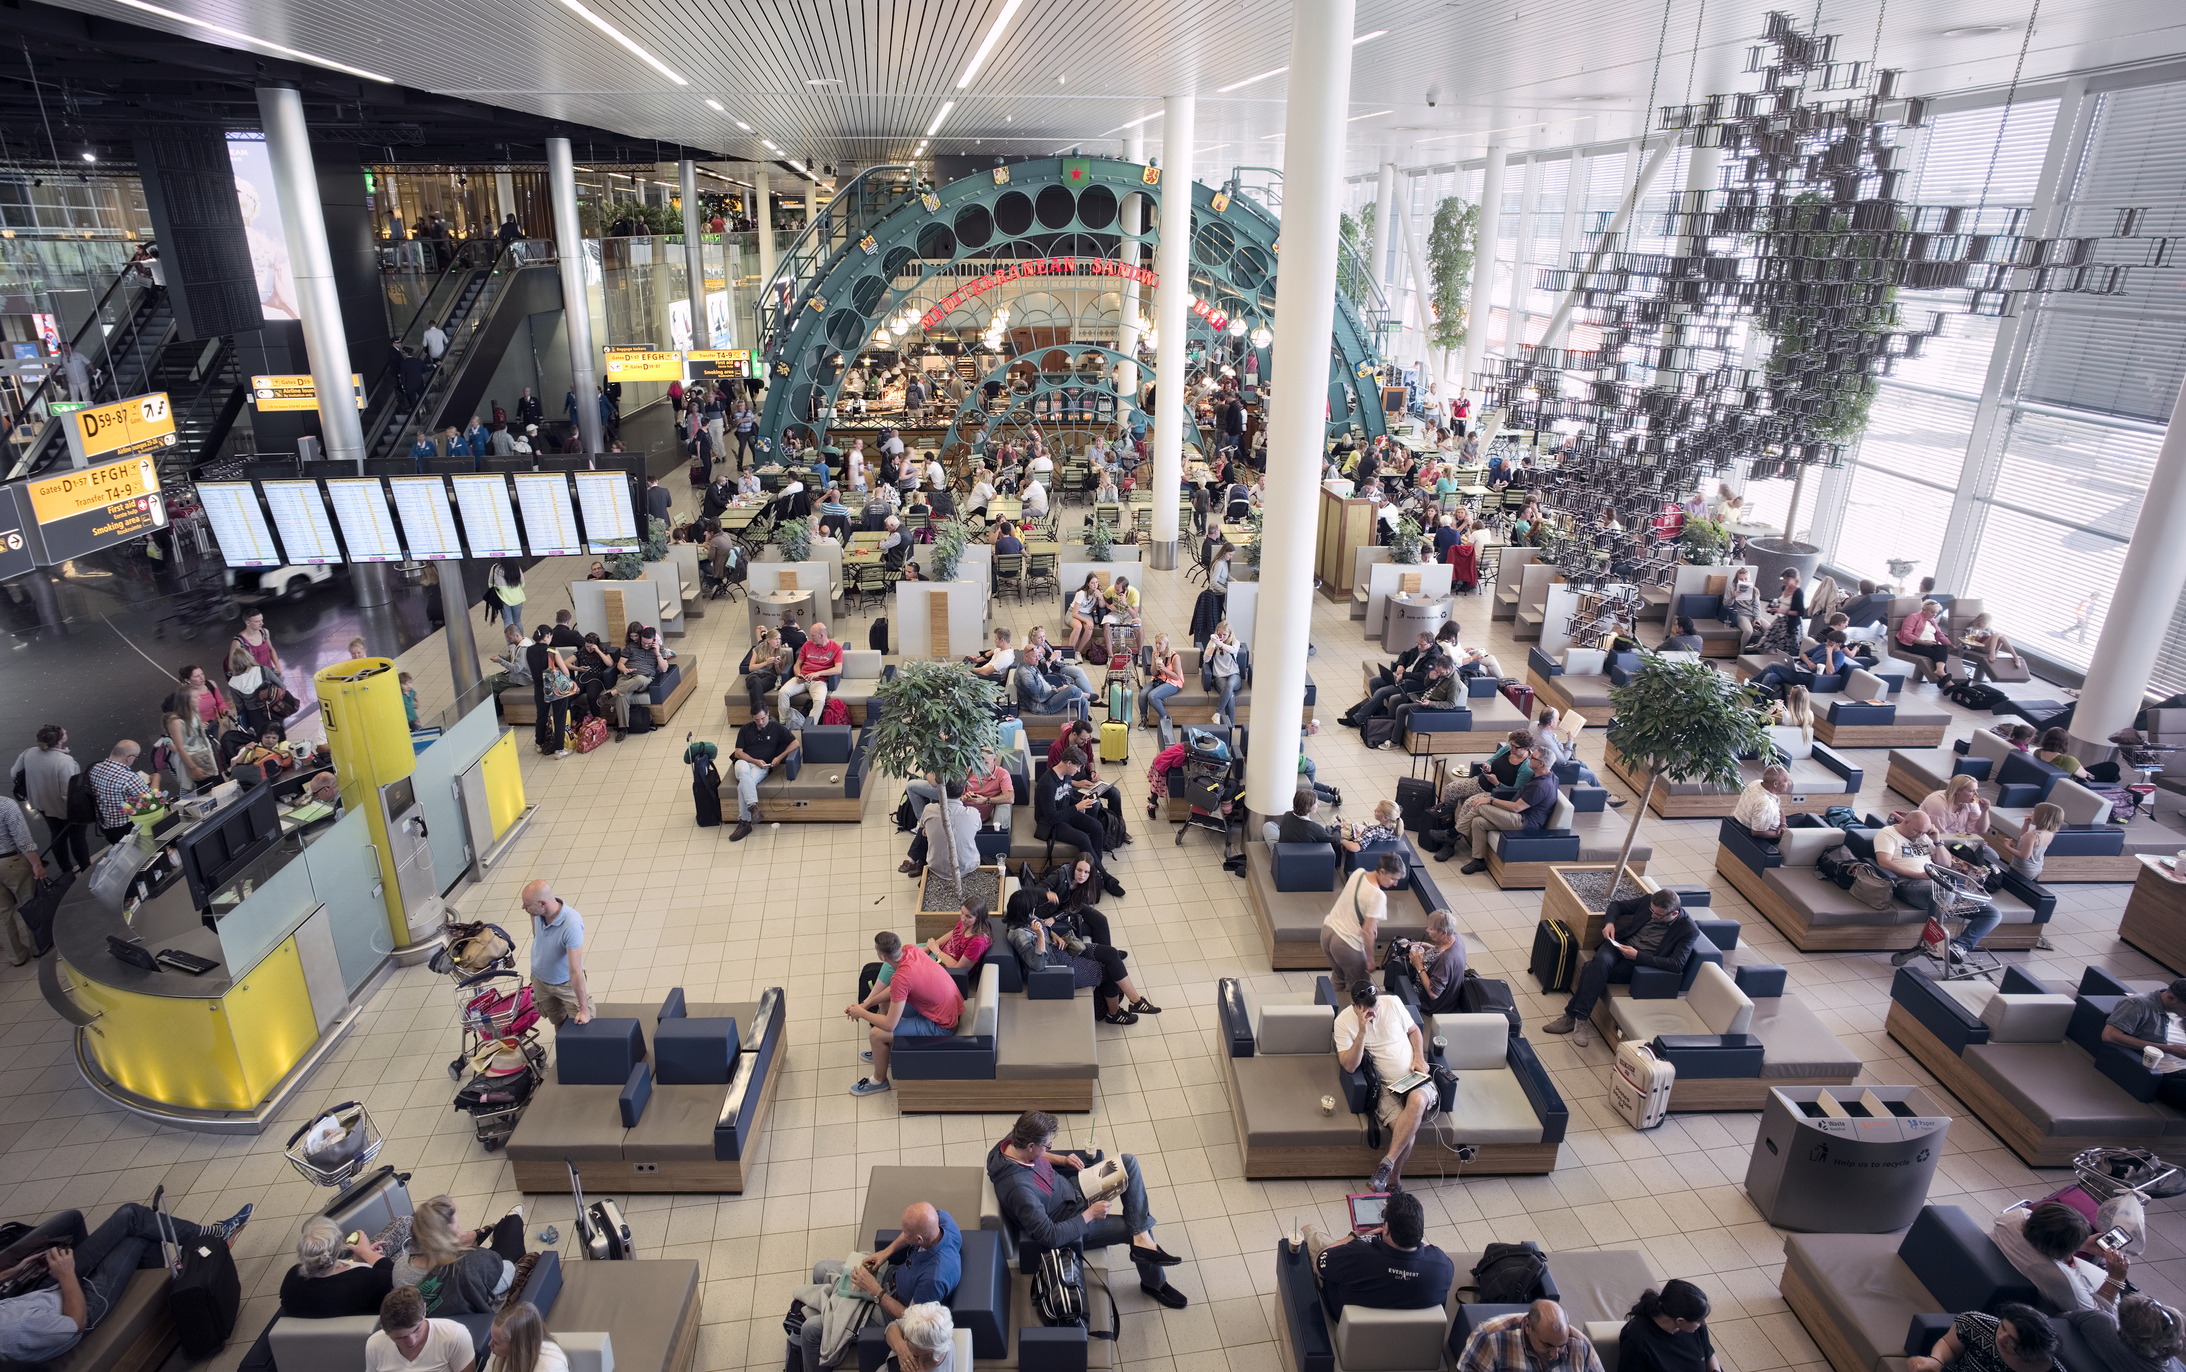 Travelers waiting for departure at one of the lounges (Schengen area) at Schiphol Airport, Amsterdam, The Netherlands.